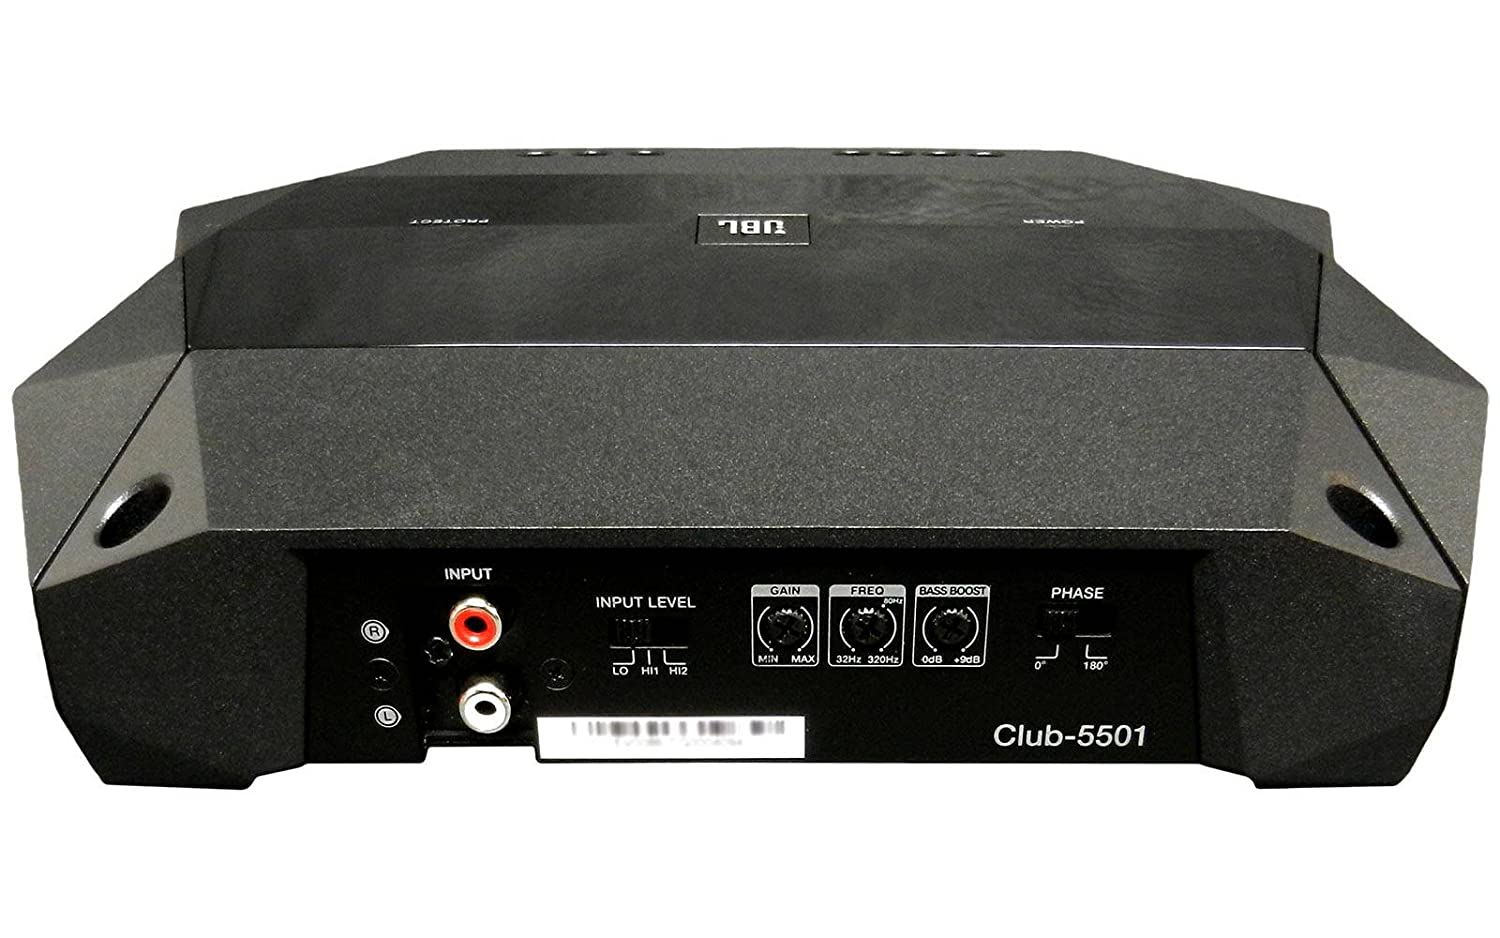 Amazon.com: JBL CLUB-5501 Monoblock Amplifier 1300W Peak (650W RMS) Club Series Class D Monoblock Amplifier: Car Electronics